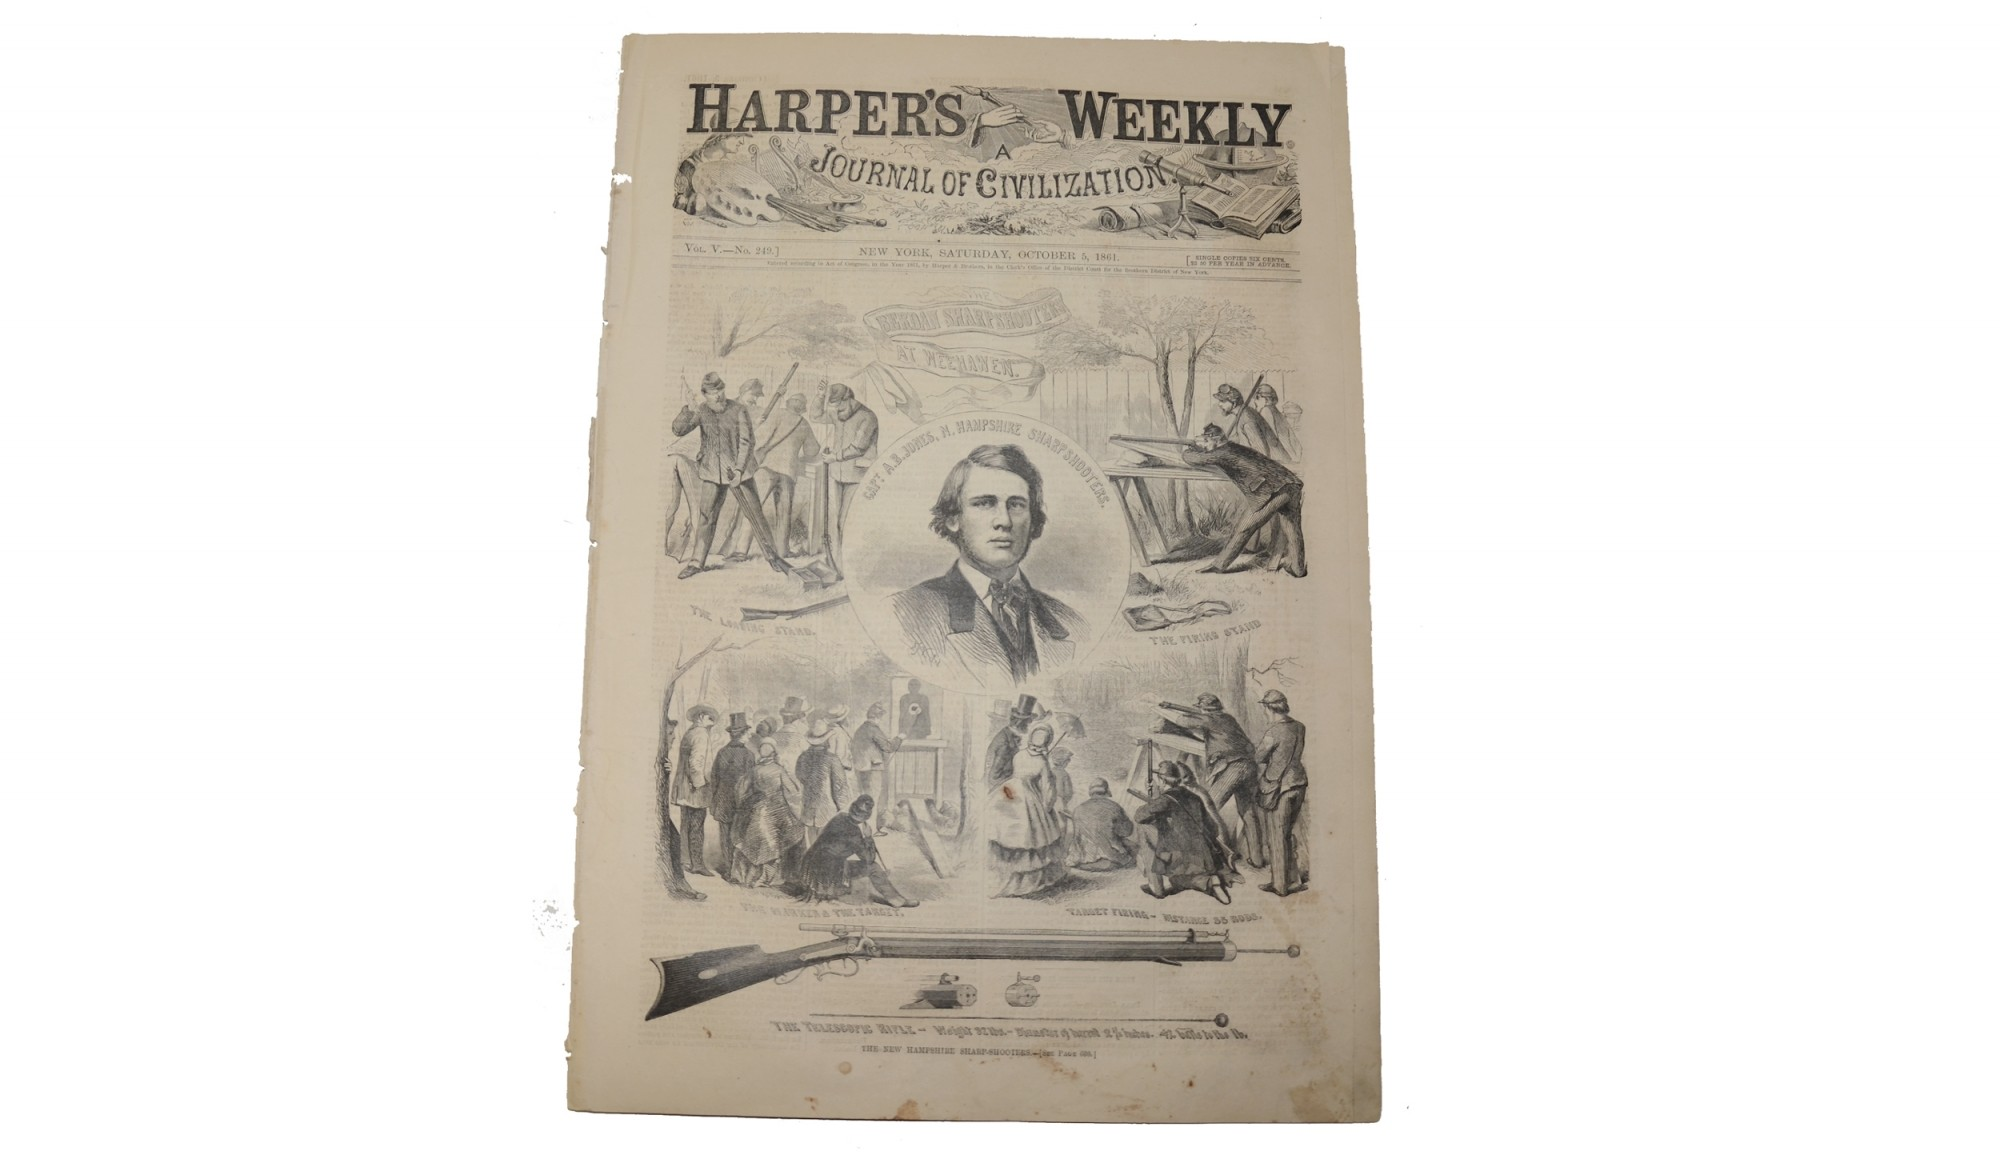 HARPER'S WEEKLY DATED OCTOBER 8, 1862 – BERDAN'S SHARPSHOOTERS